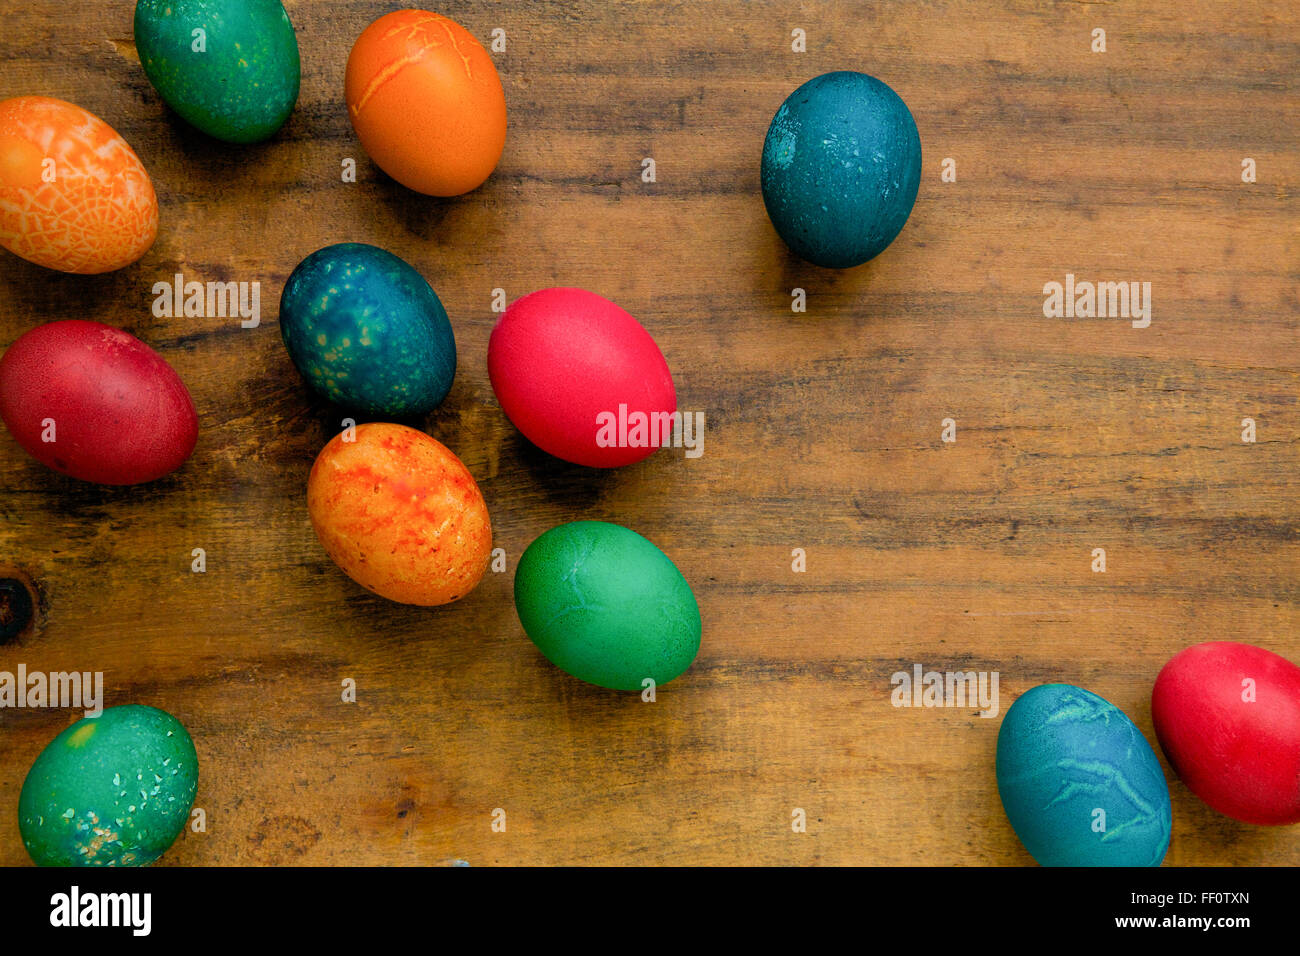 Multicolored dyed easter eggs on a wooden surface. - Stock Image